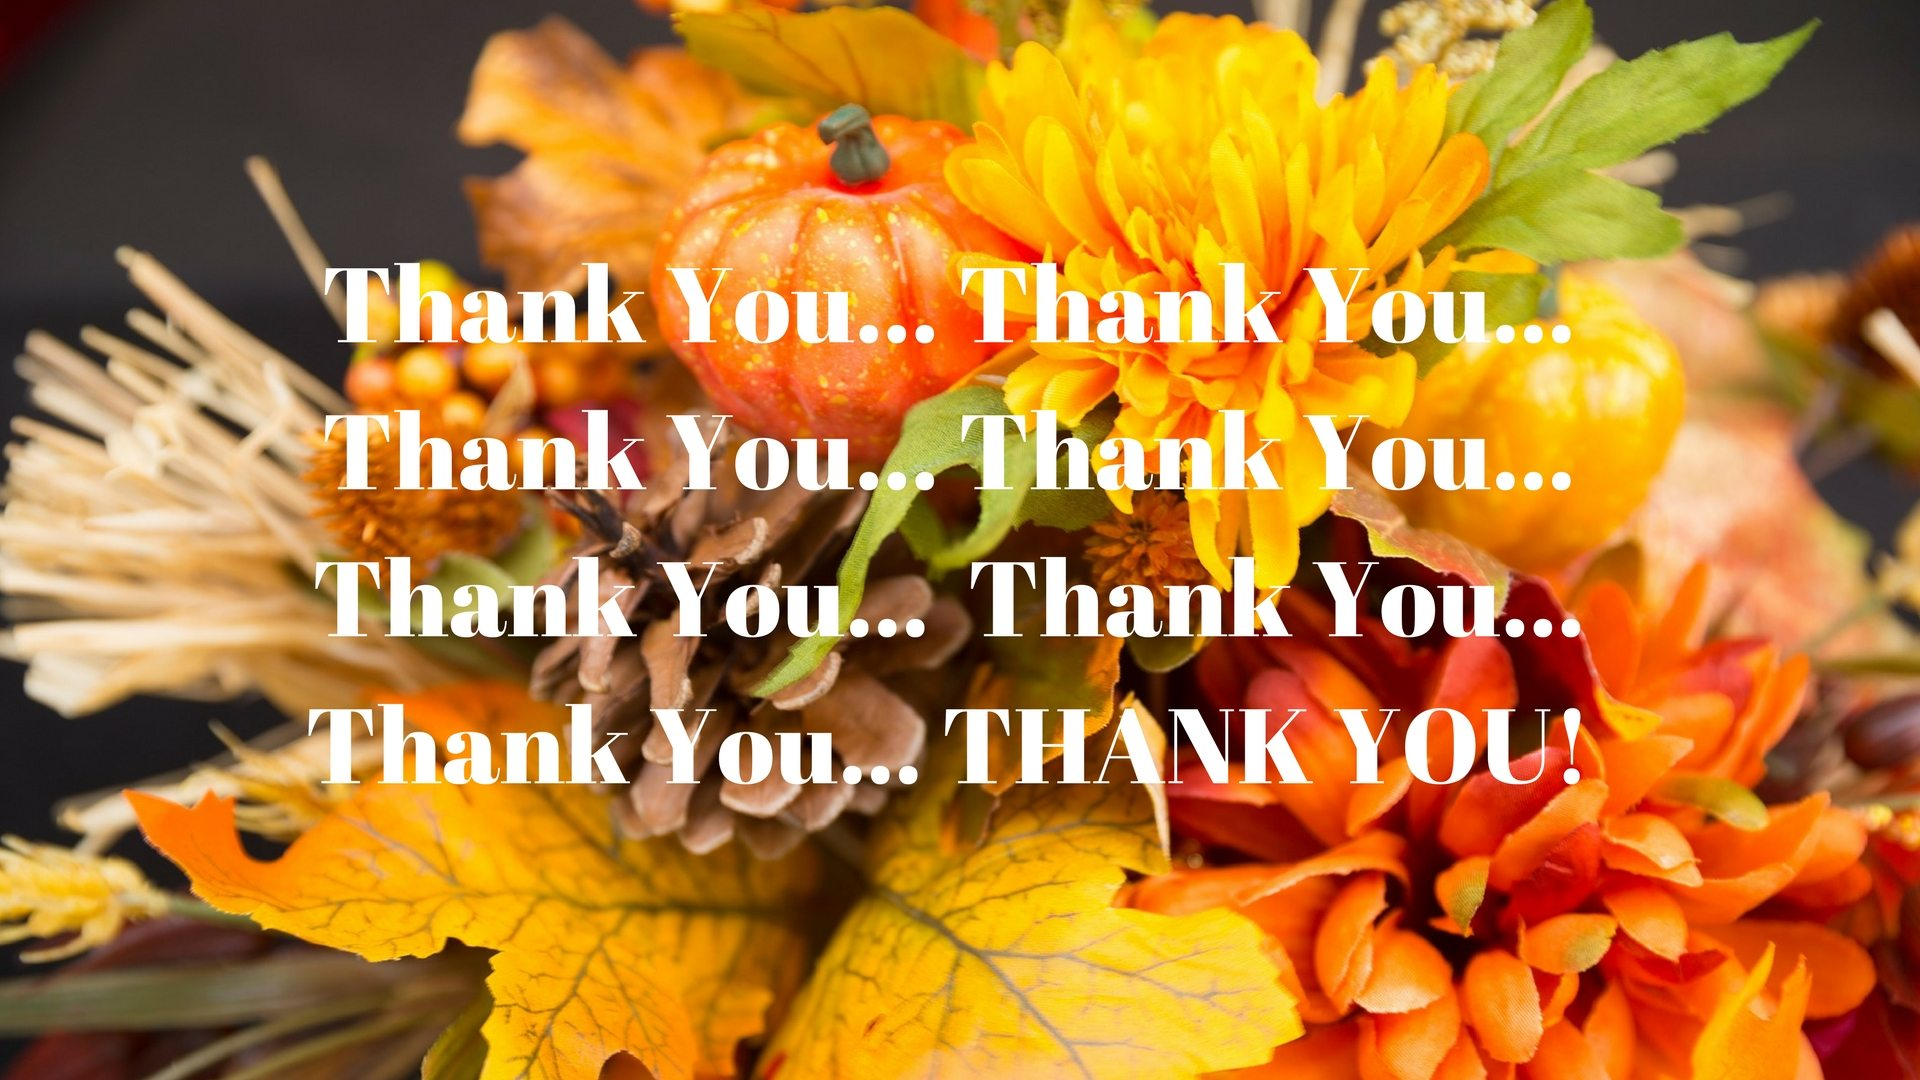 Peaceable celebrating Thank You... Thank You... Pixabay Canva